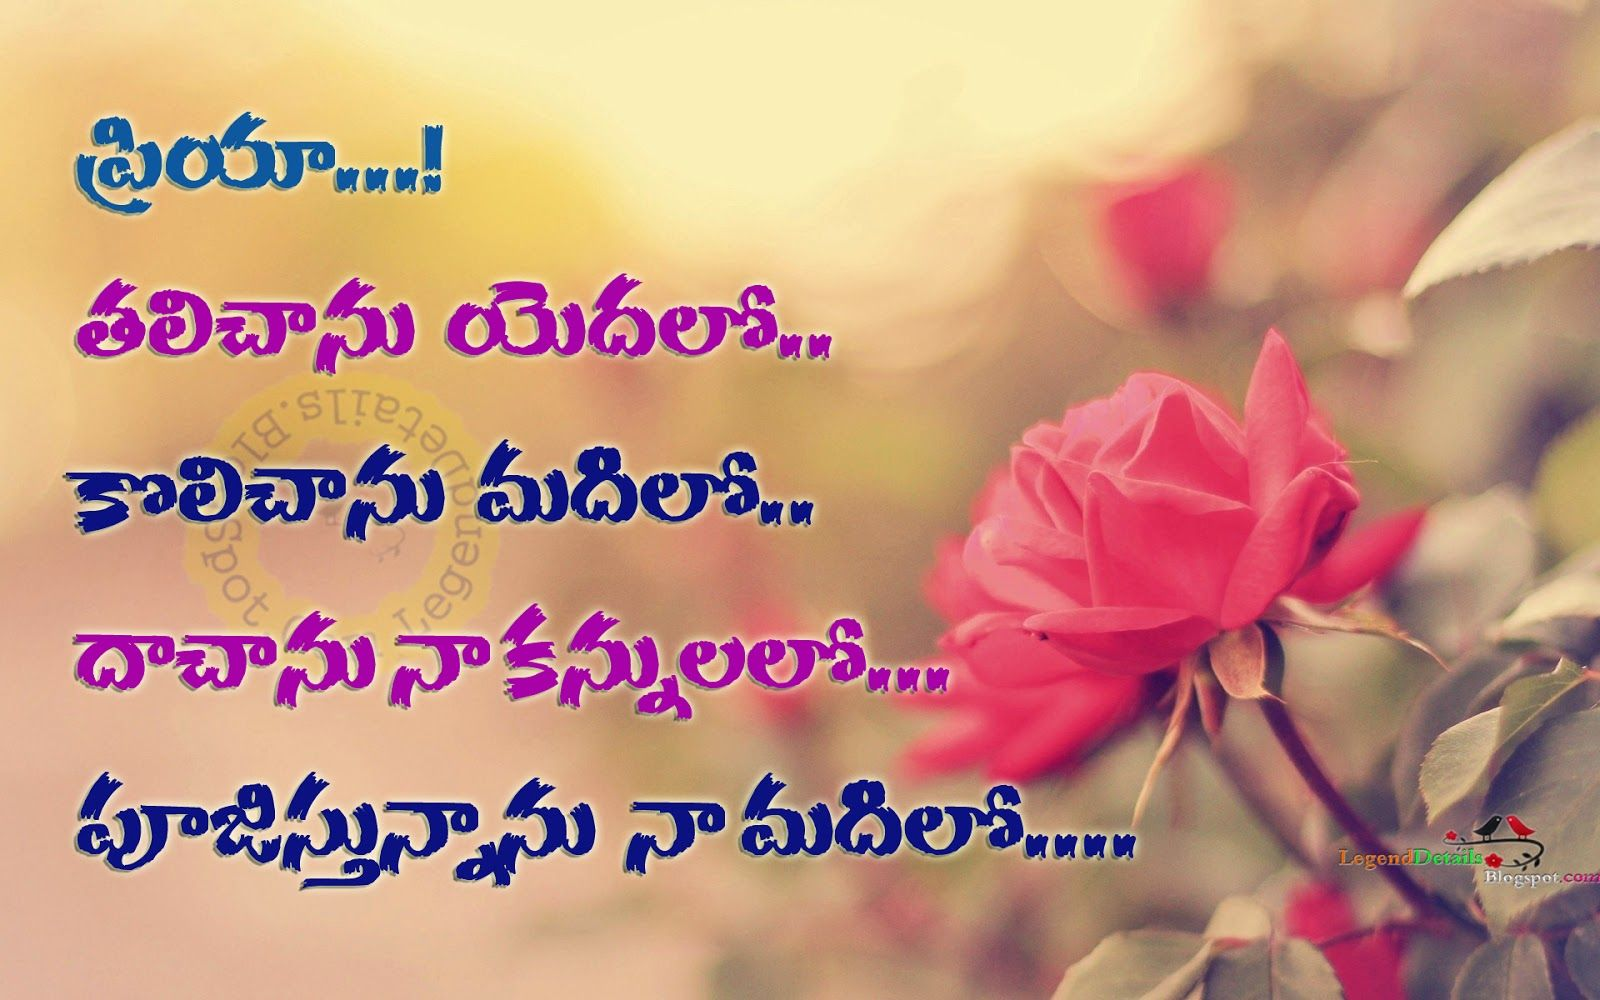 Enjoyable Telugu Kavithalu On Love Inspirational Quotes Pictures Funny Birthday Cards Online Inifofree Goldxyz